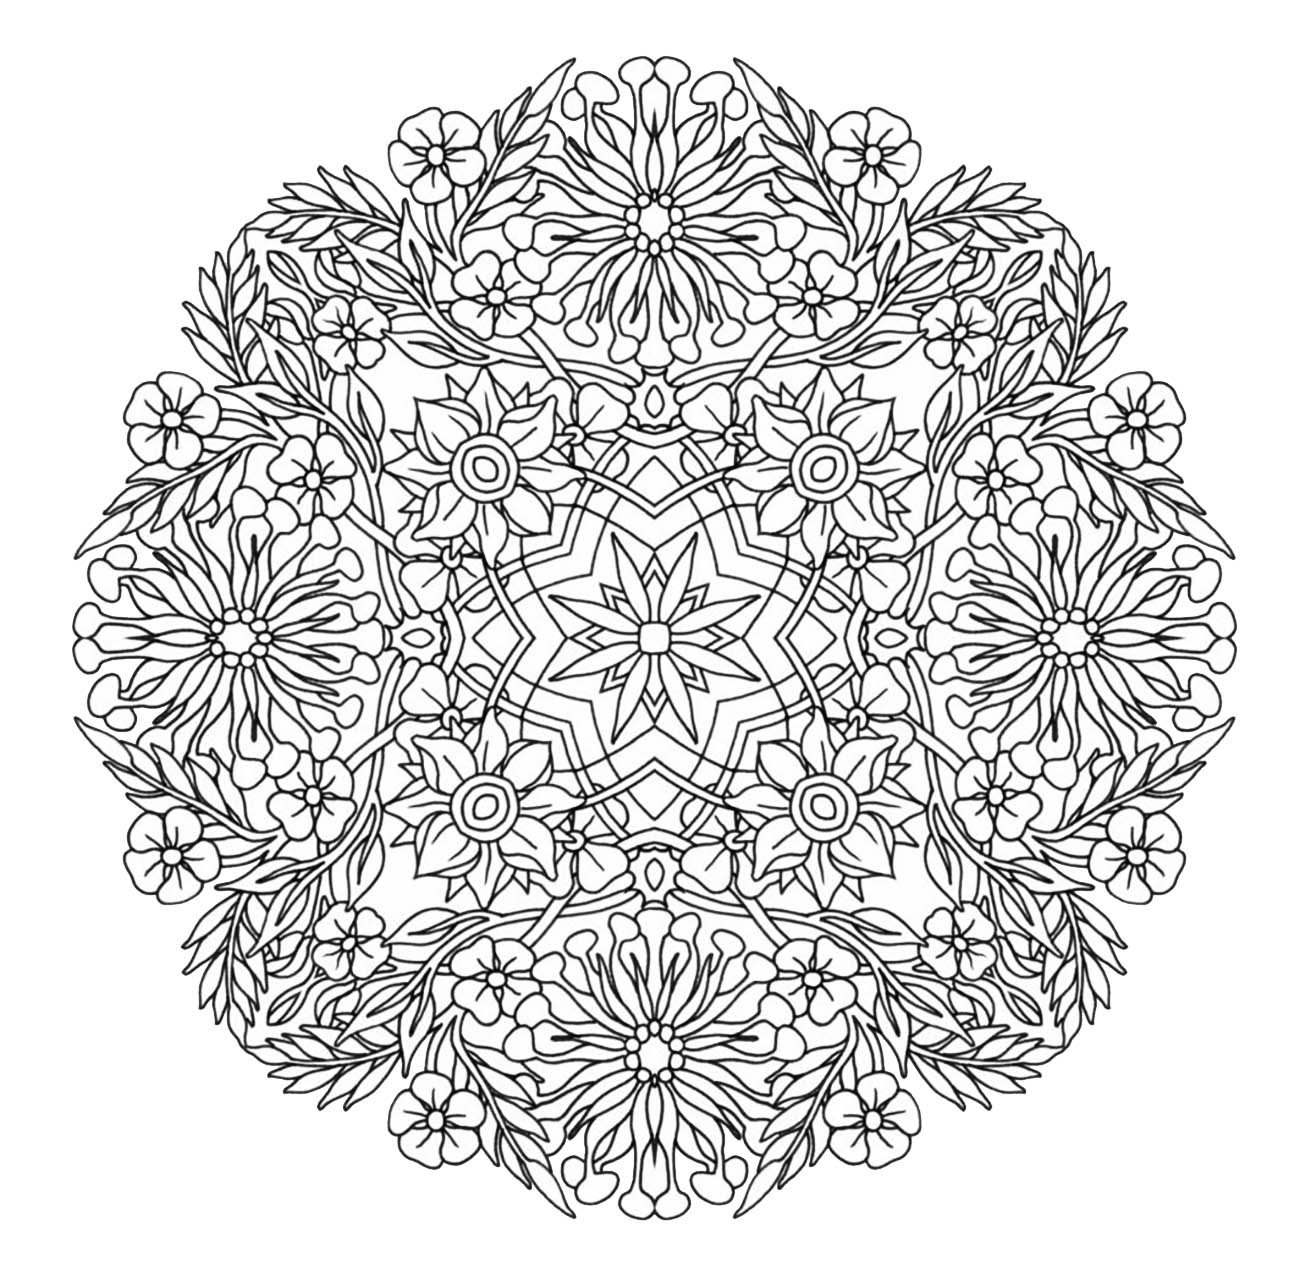 Hard mandala coloring pages for adults - Mandala To Download Giant Flowers With Smart Petals Free